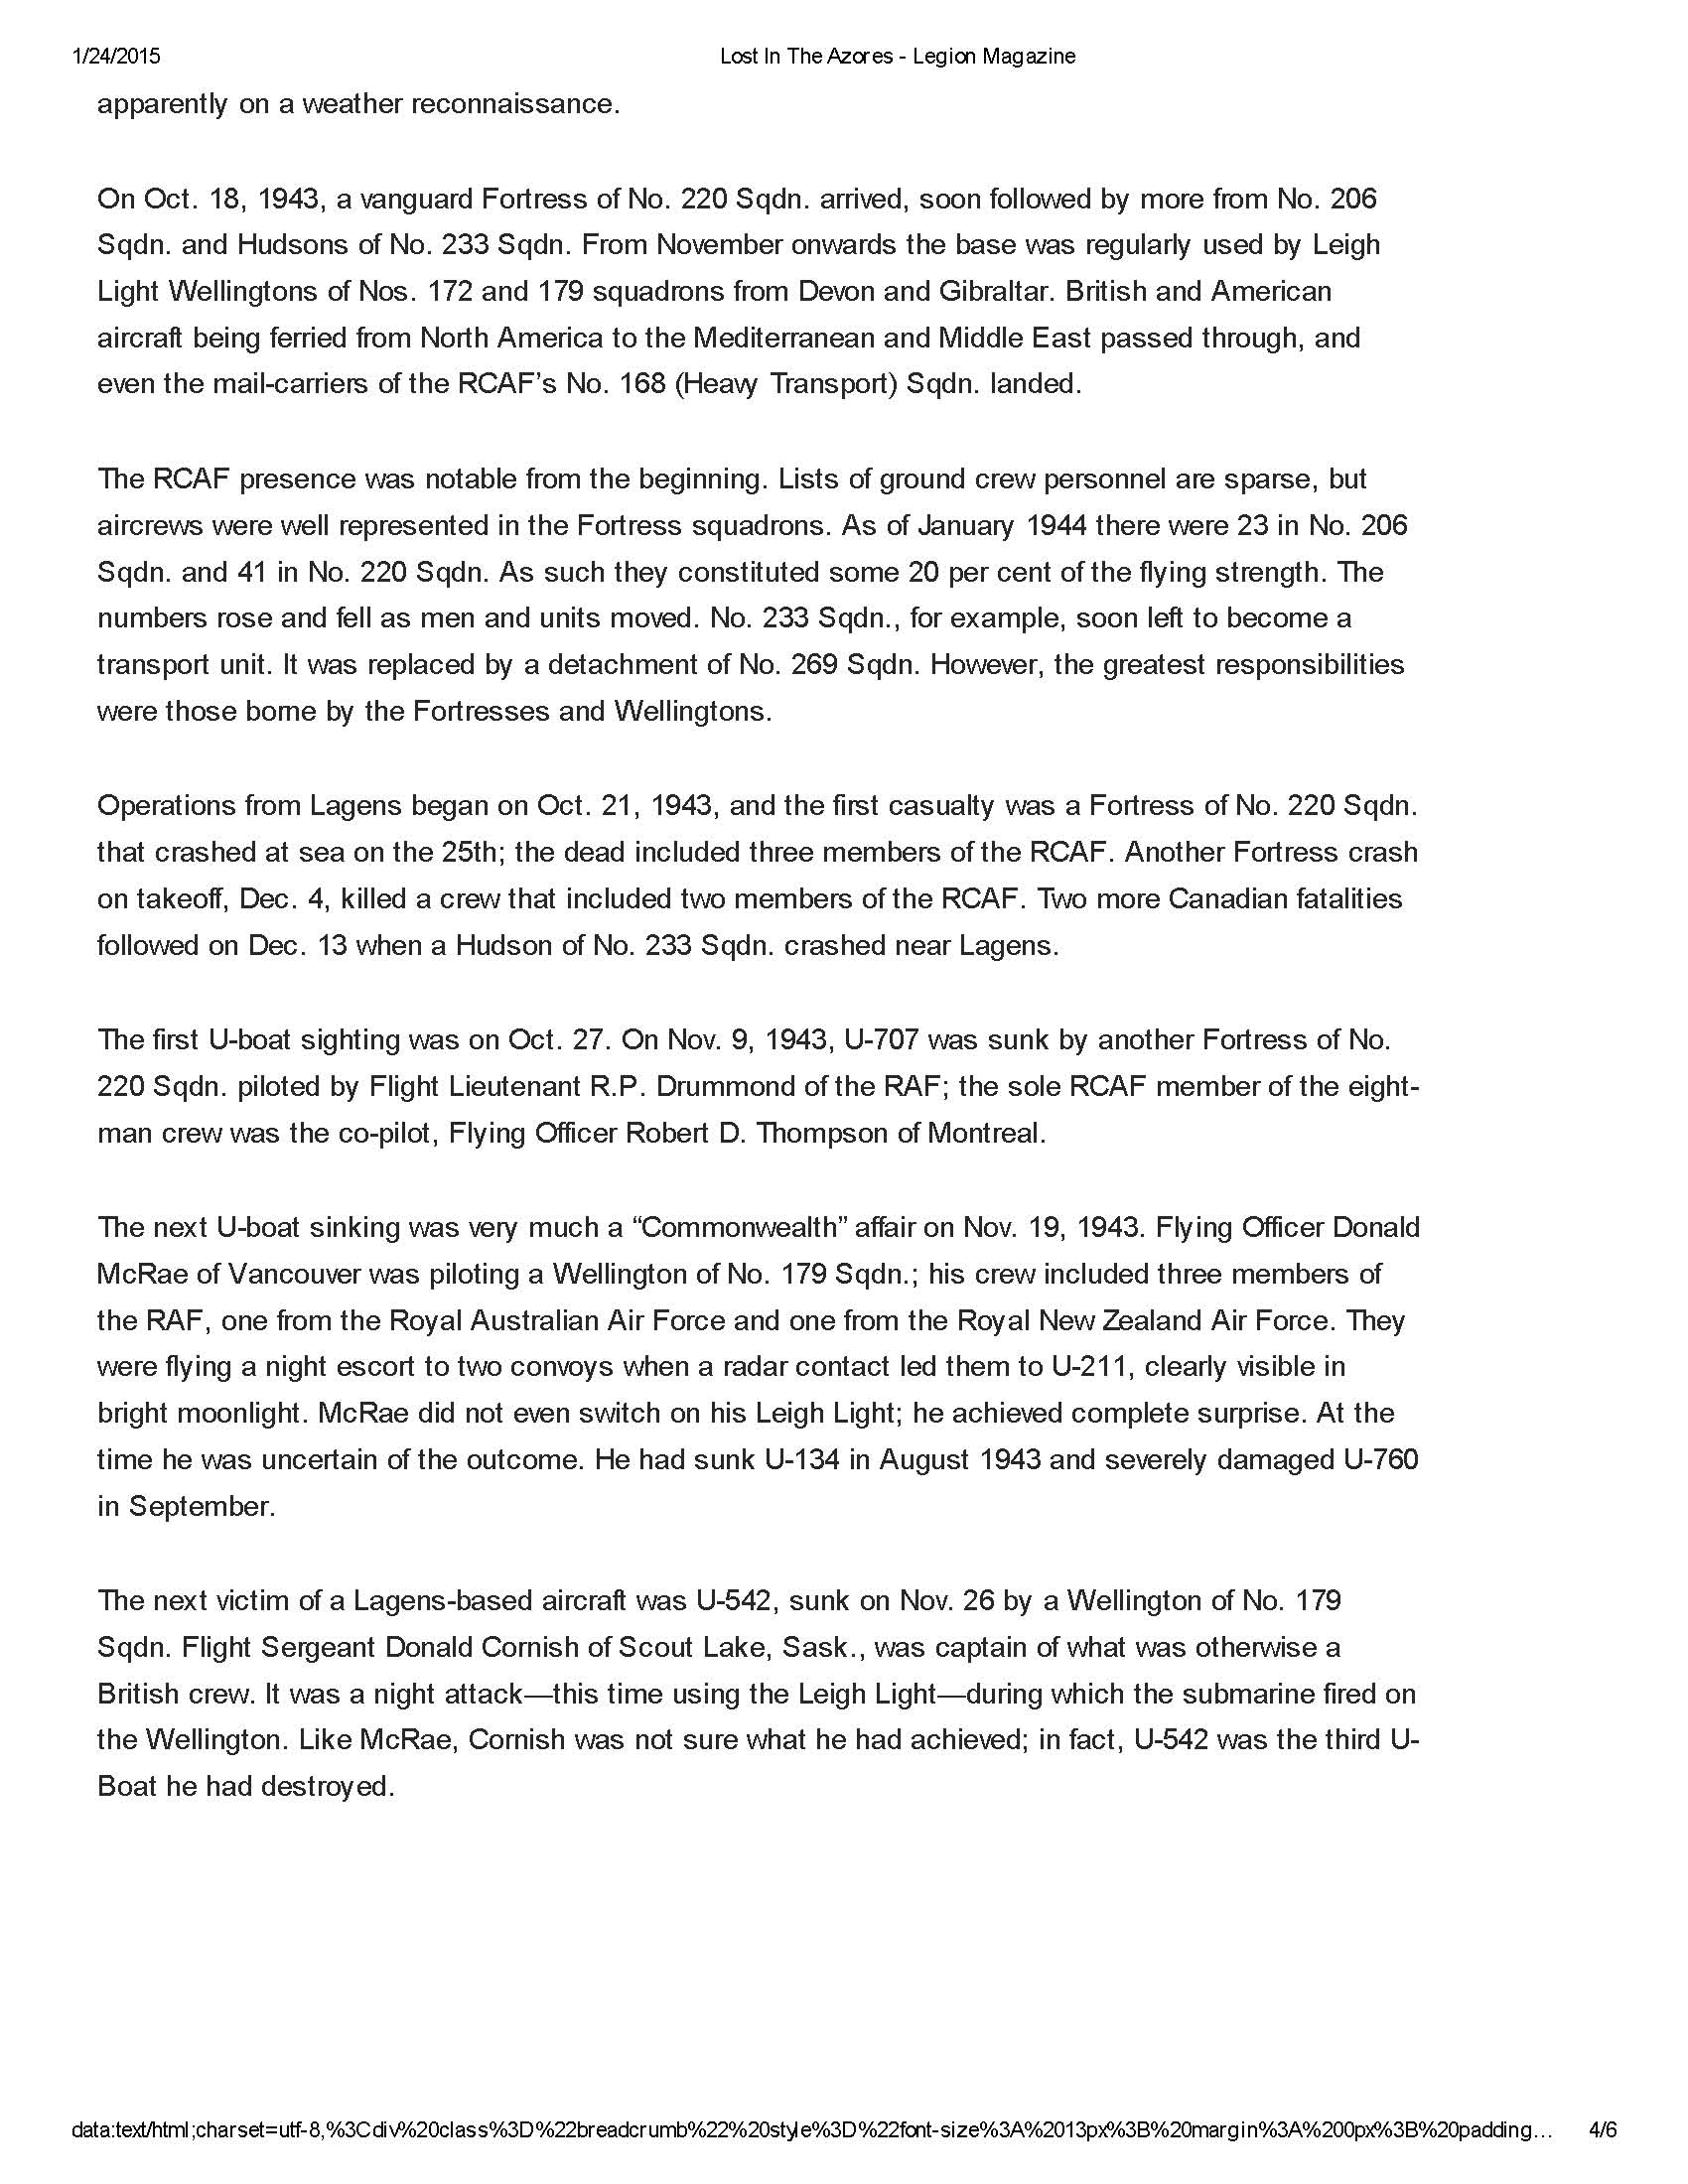 Newspaper Clipping– Article written by Hugh A. Halliday and published in the Legion Magazine on January 28, 2014 which mentions Alfred William Dungate